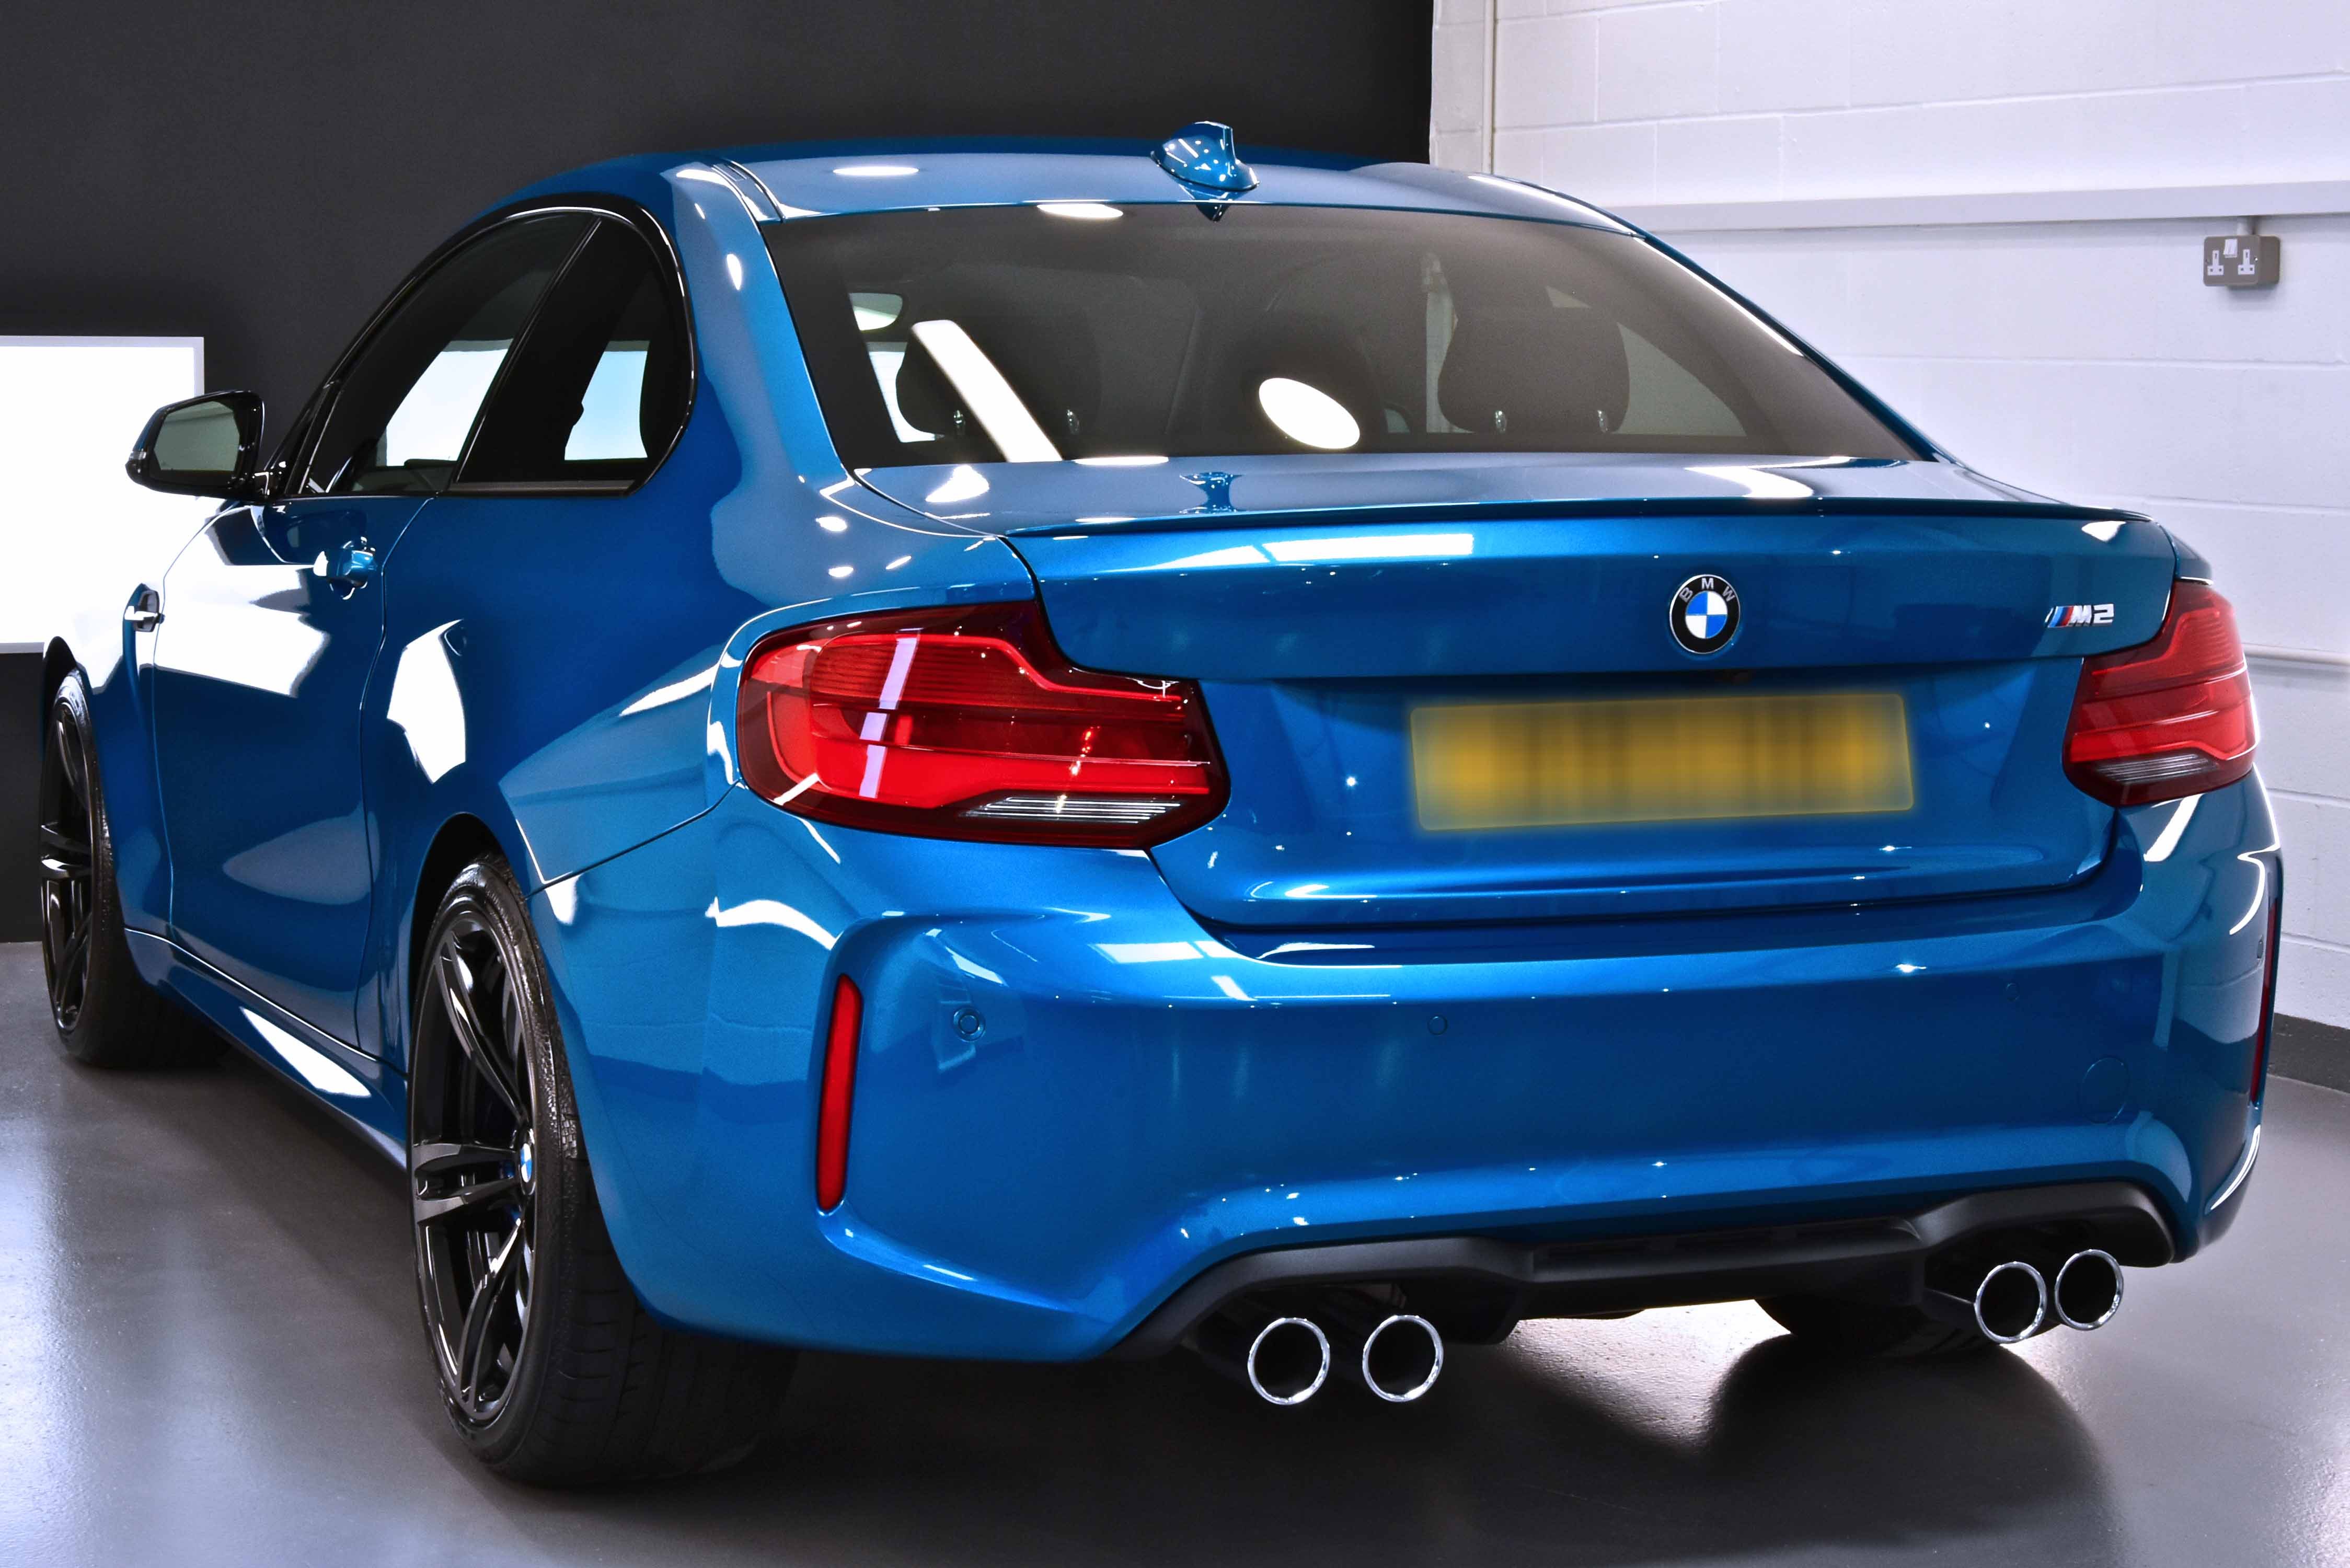 BMW M2 NEW Car Enhancement and Protection Detail with Gtechniq Crystal Serum Ultra and EXOv4 and XPEL PPF